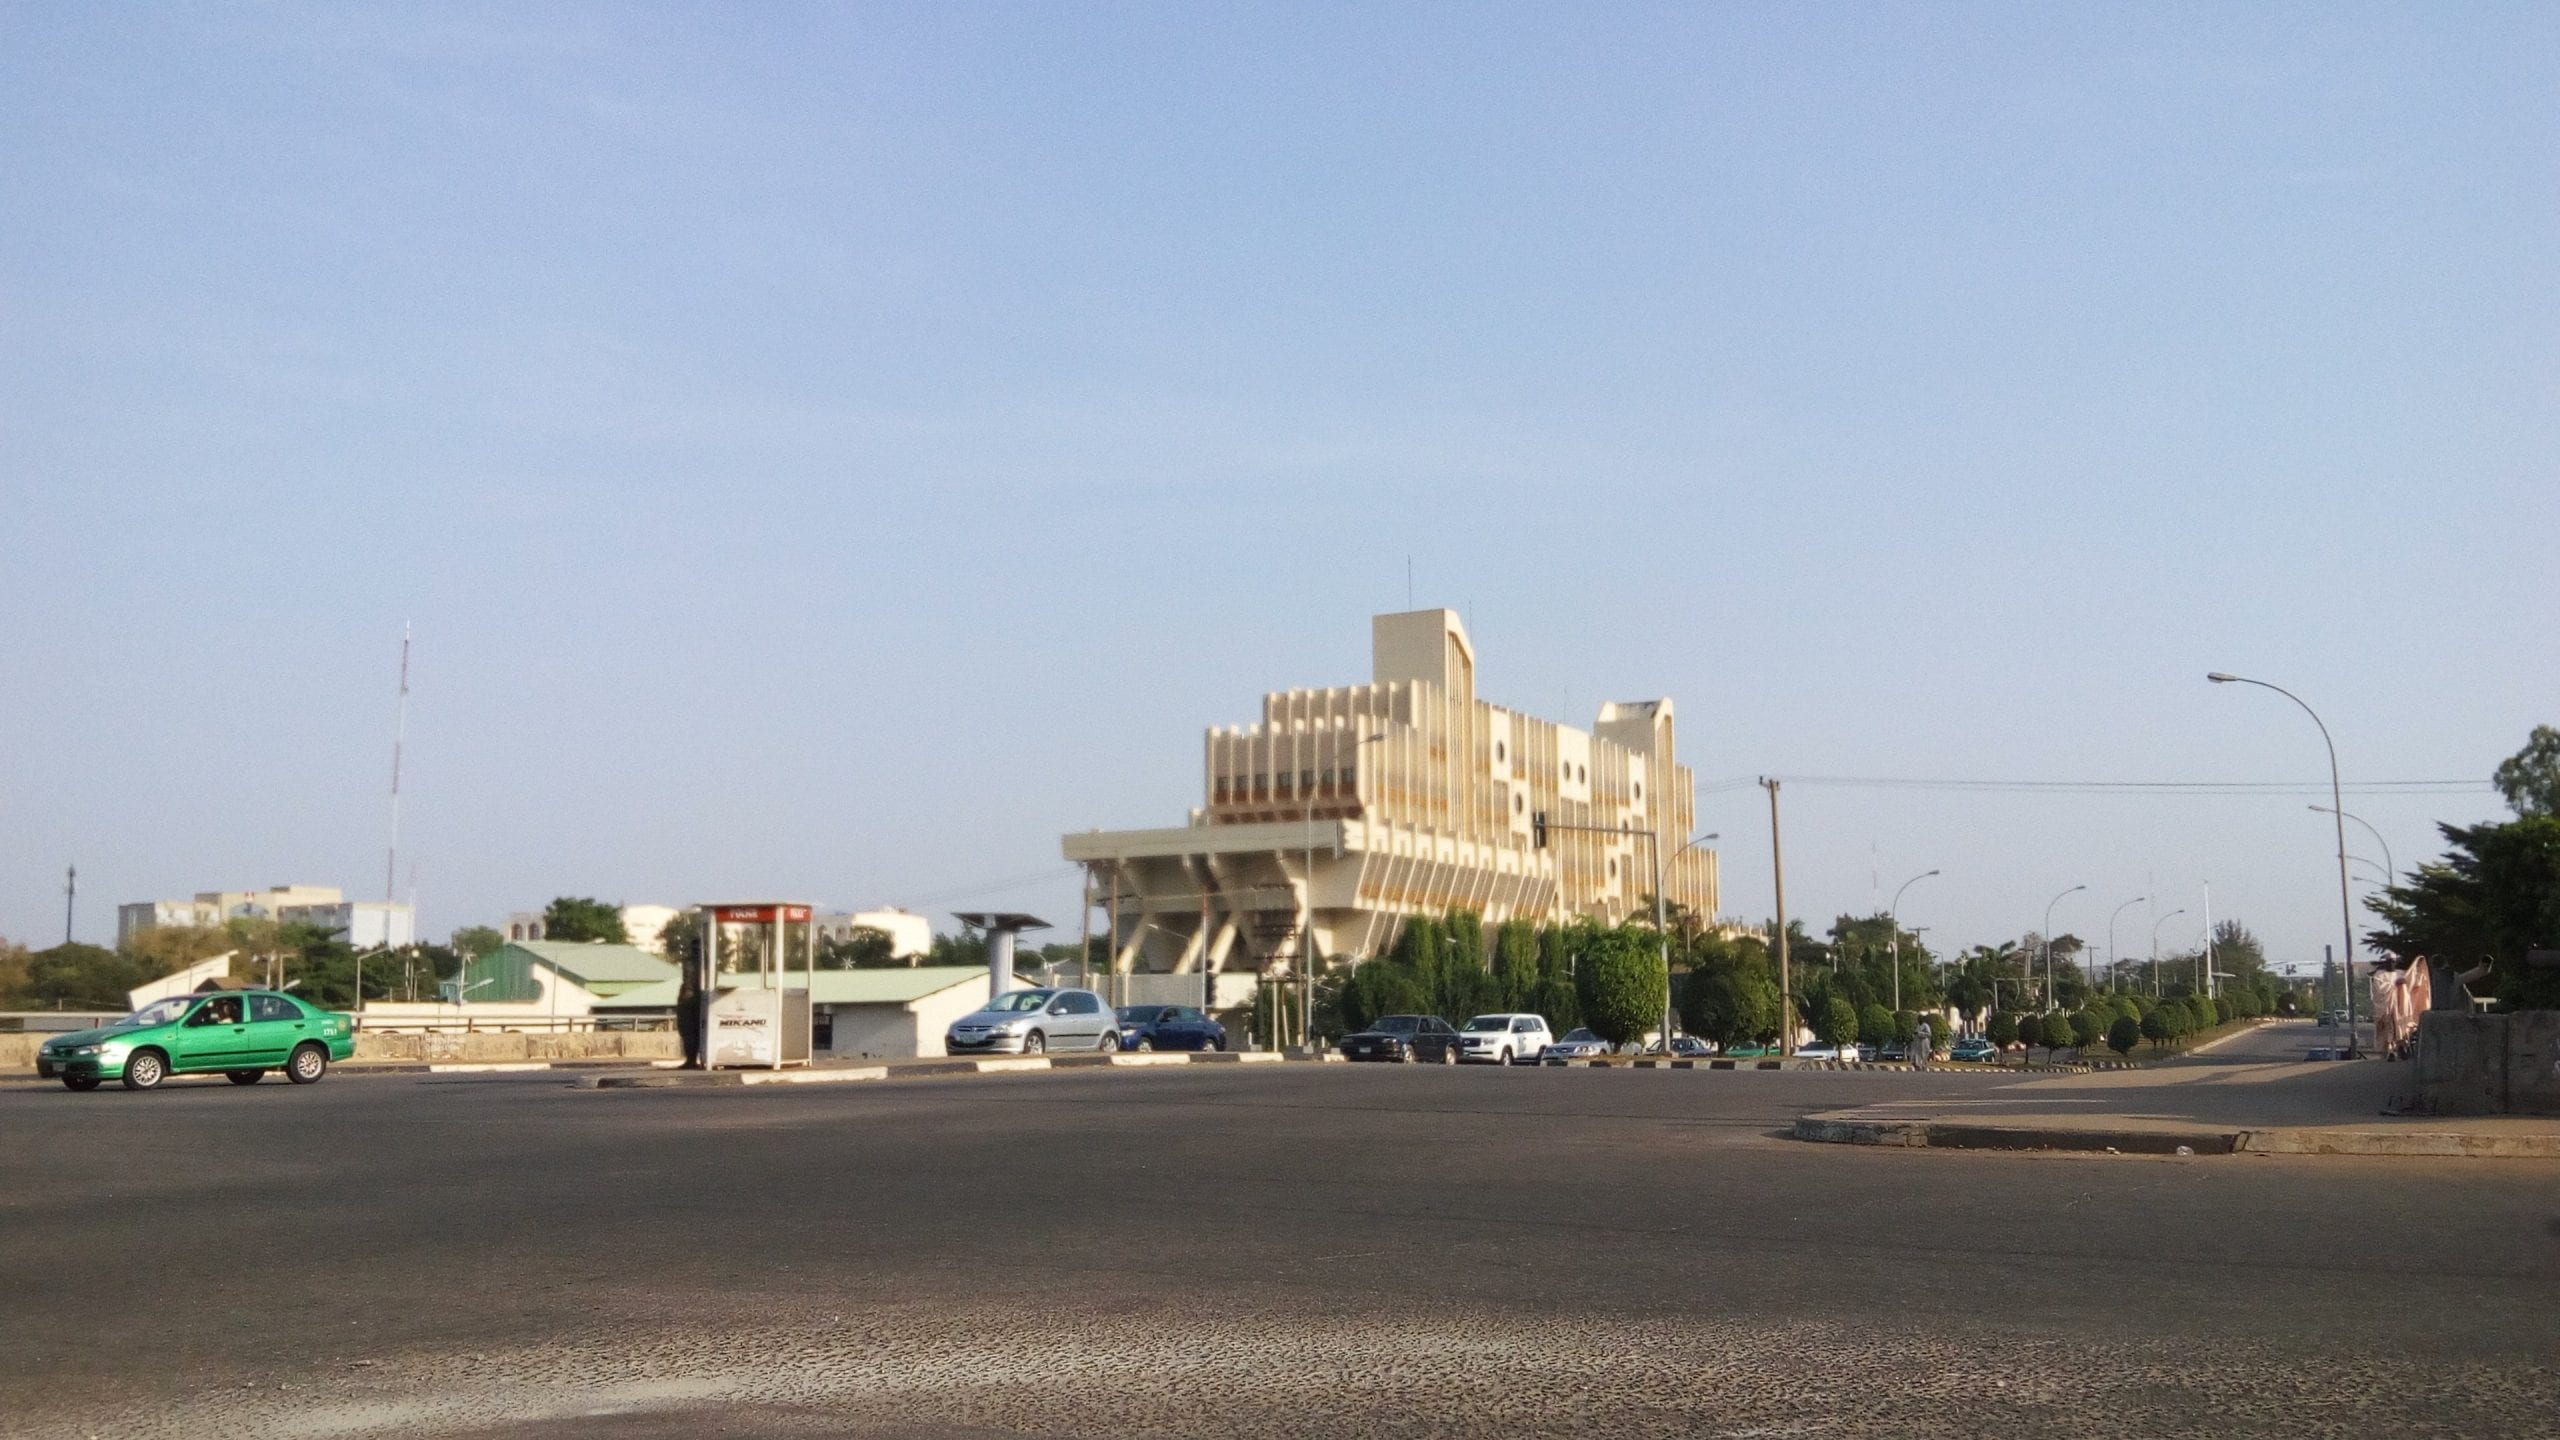 where is the most beautiful building in abuja